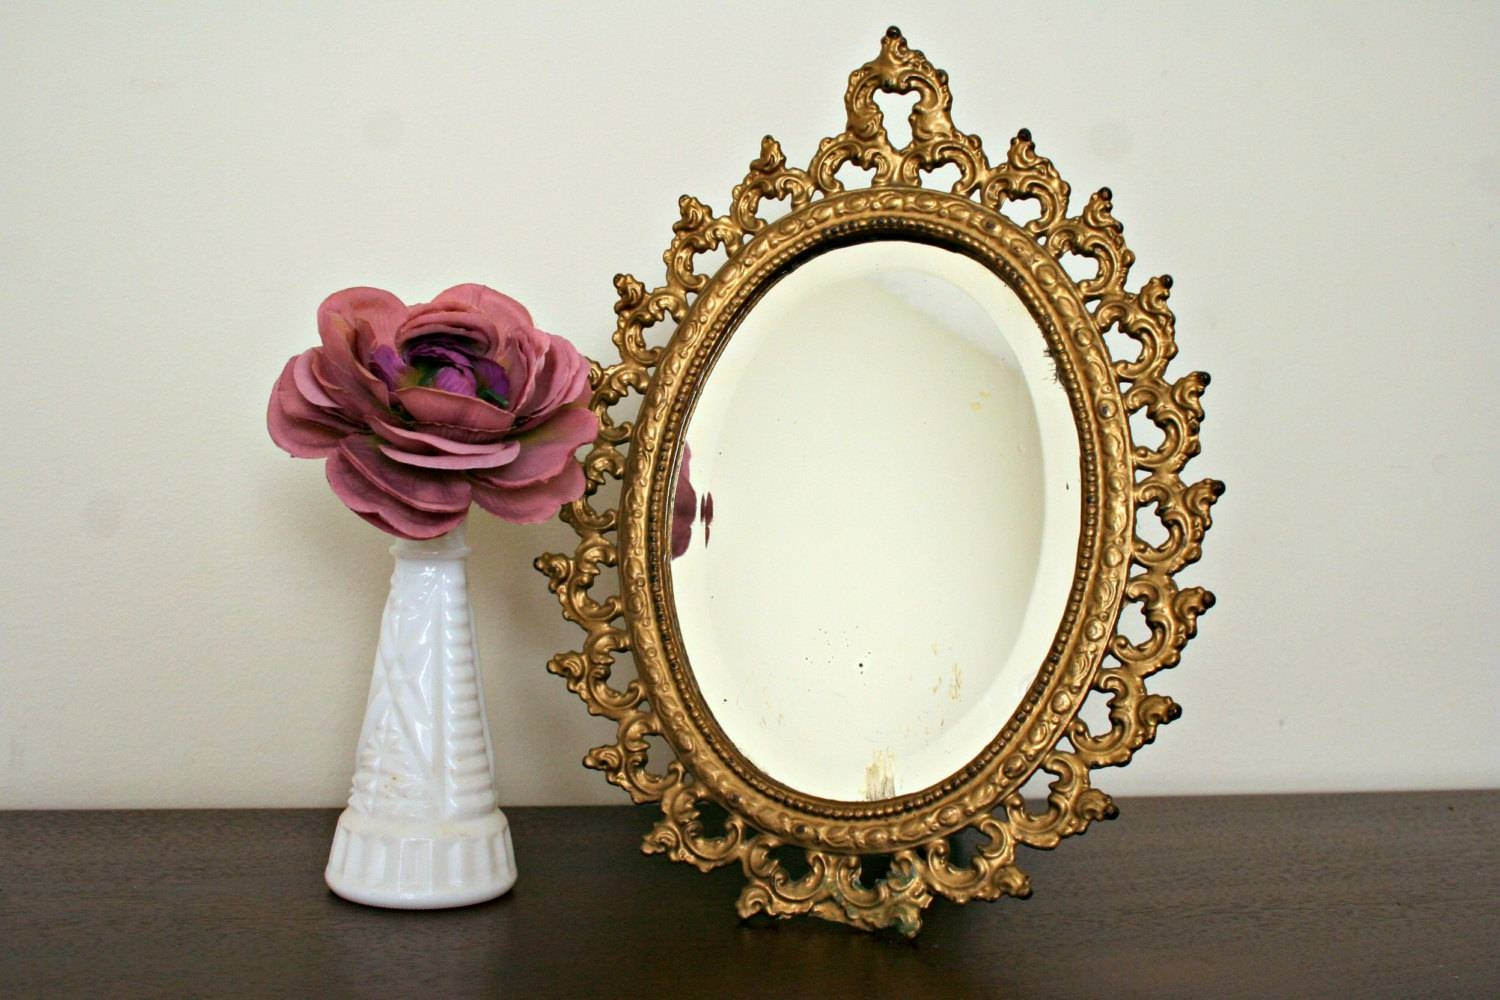 Gold Baroque Table Mirror Ornate Vanity Mirrormyoliviavintage in Gold Table Mirrors (Image 12 of 25)